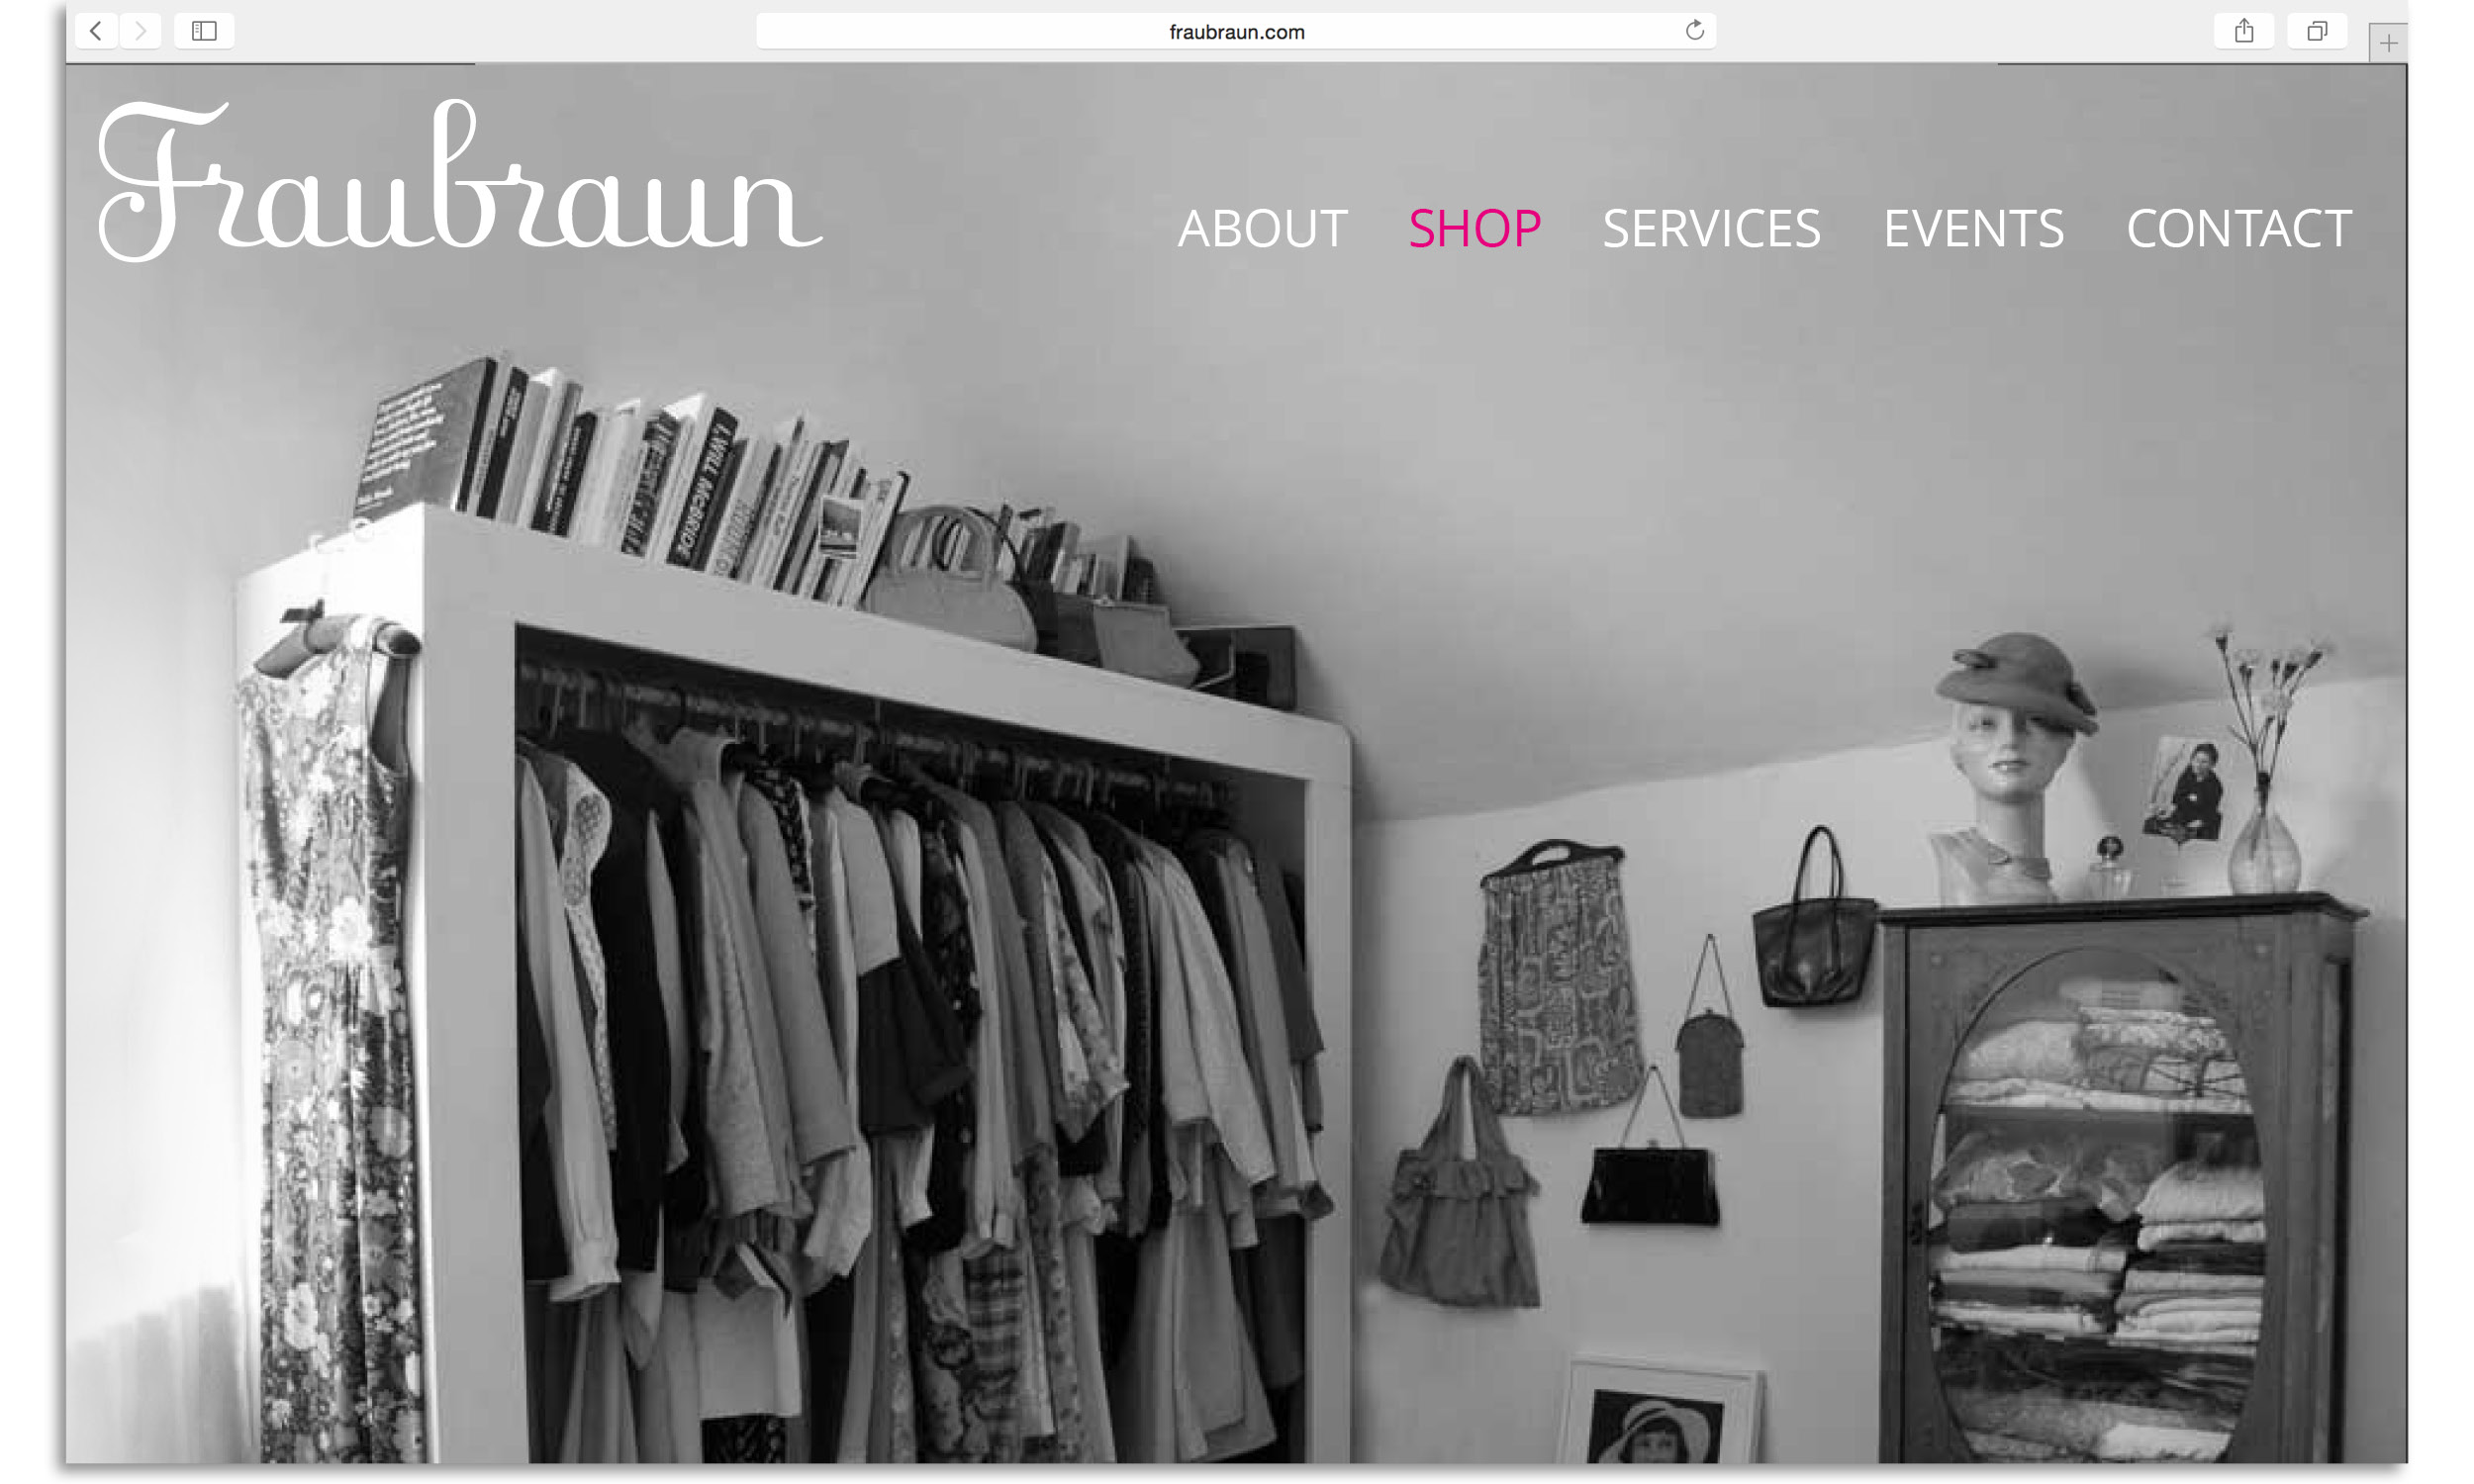 Fraubraun-website-LR1.jpg